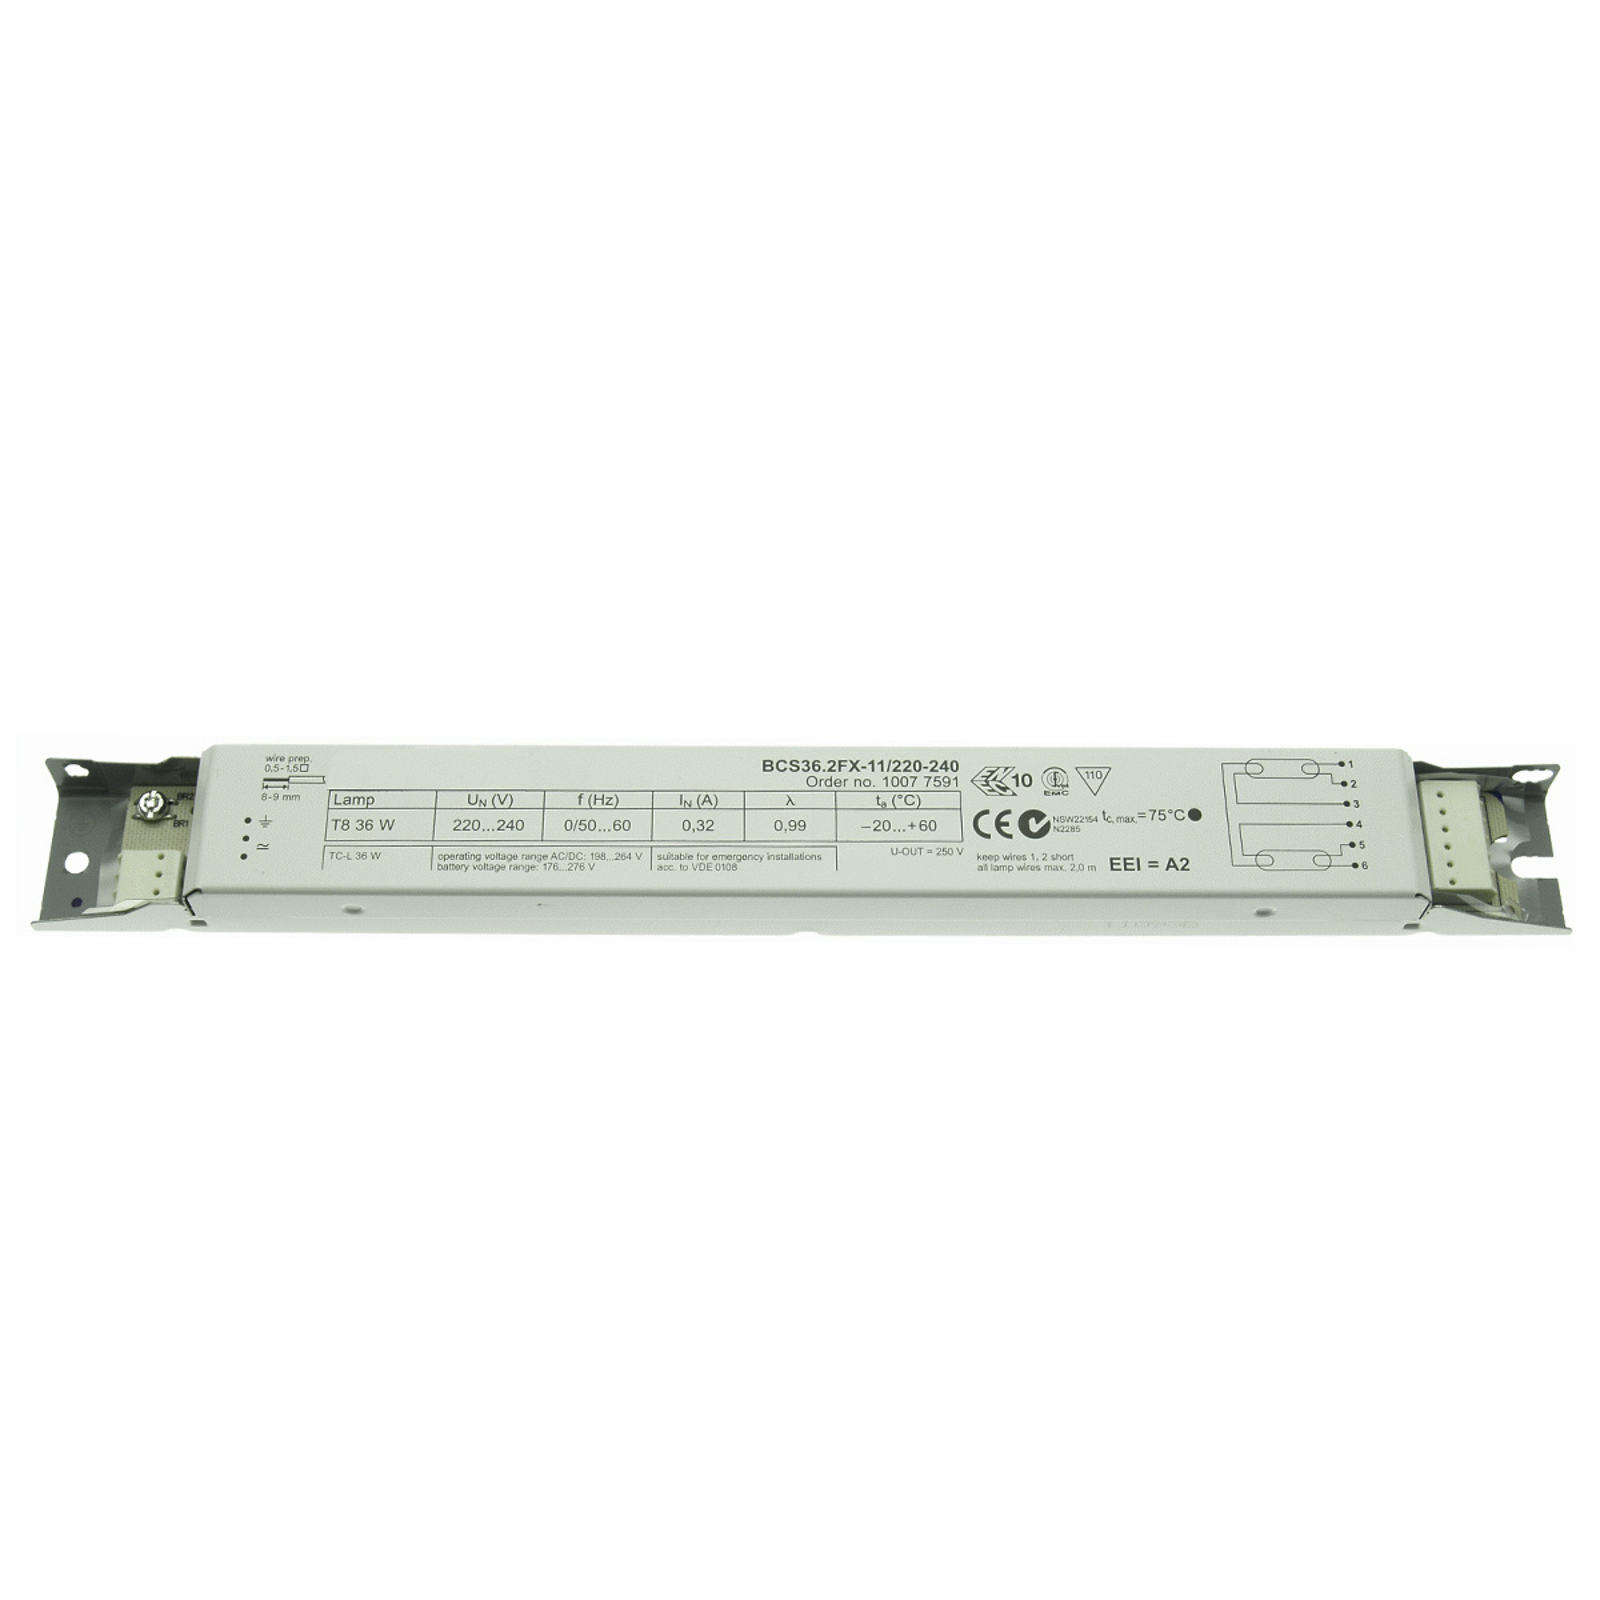 EB 2 x 36W T8 BCS36.2FX-11/220-240 not dimmable_4519058_1